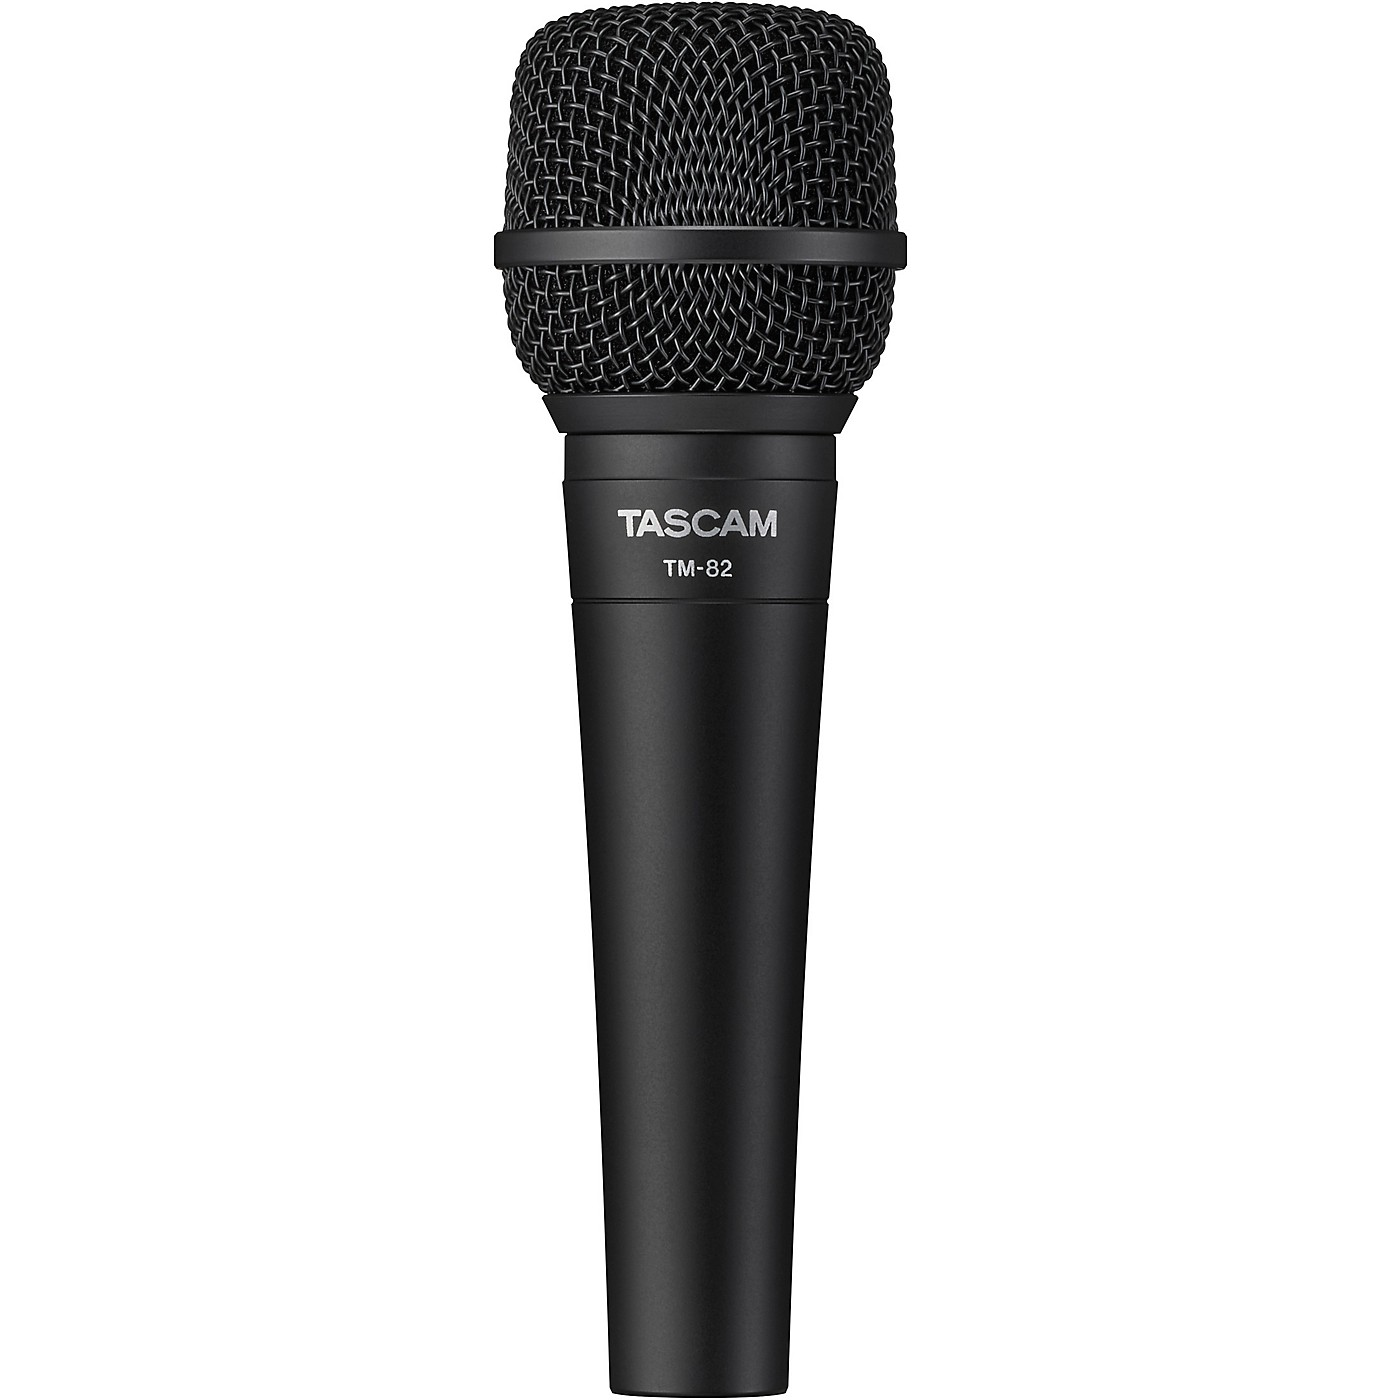 TASCAM TM-82 Dynamic Microphone for Recording Vocals and Instruments thumbnail